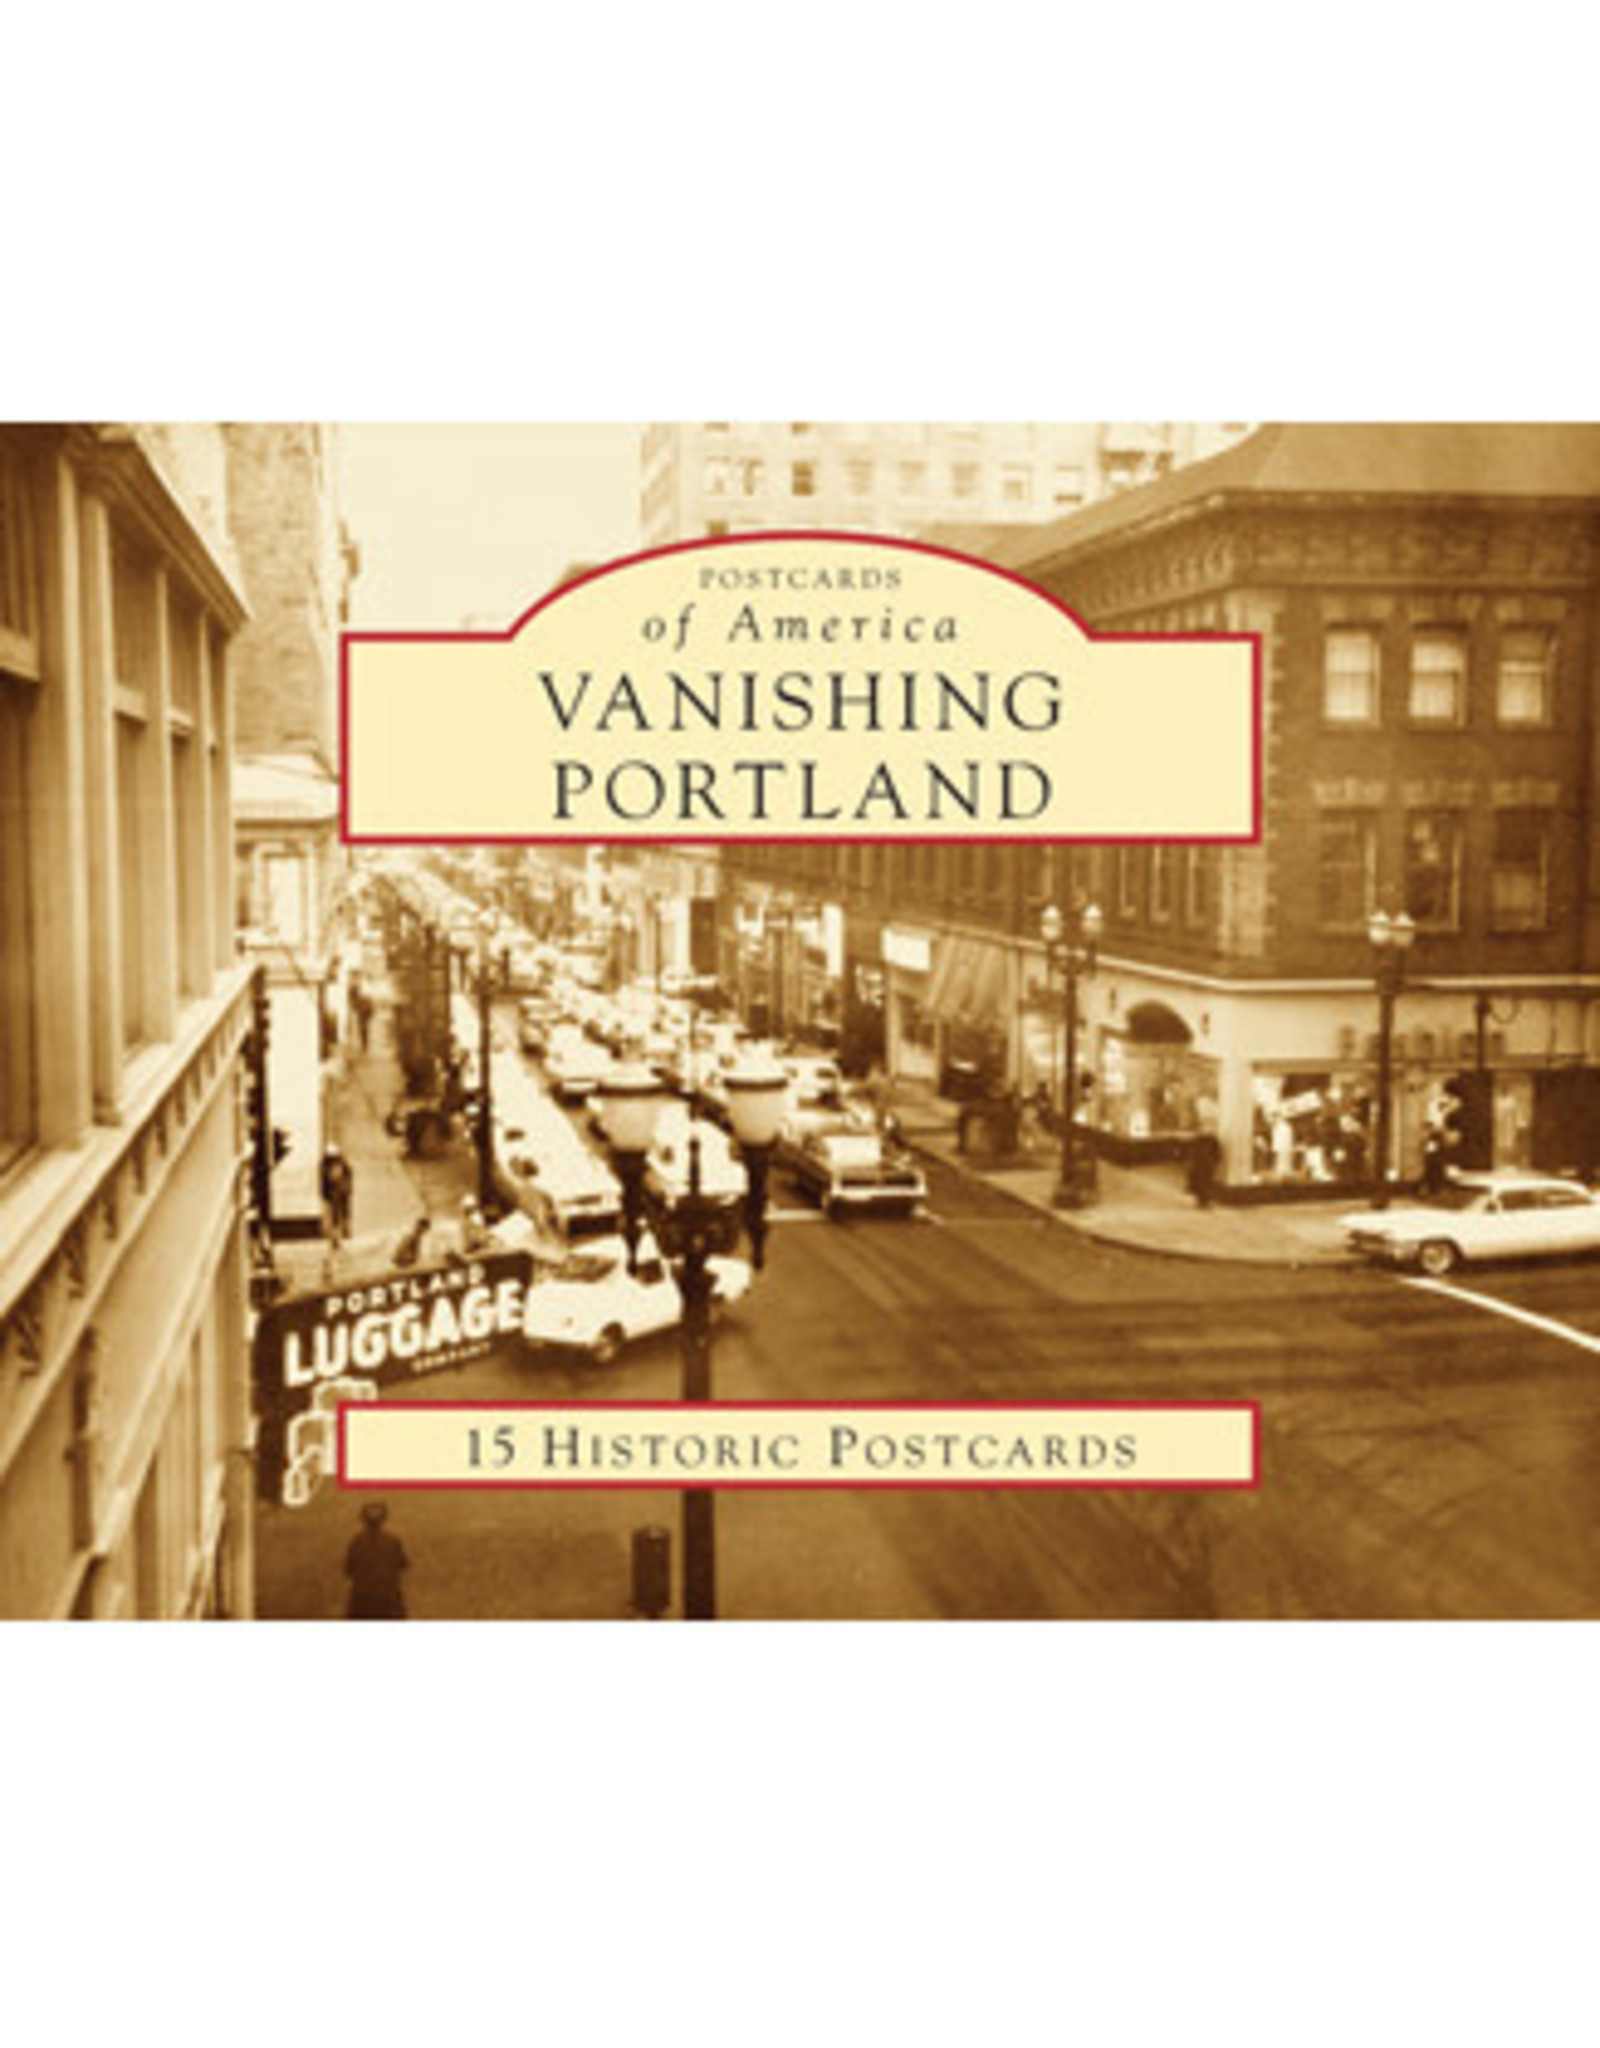 Vanishing Portland 15 Historic Postcards by Ray and Jeanna Bottenberg